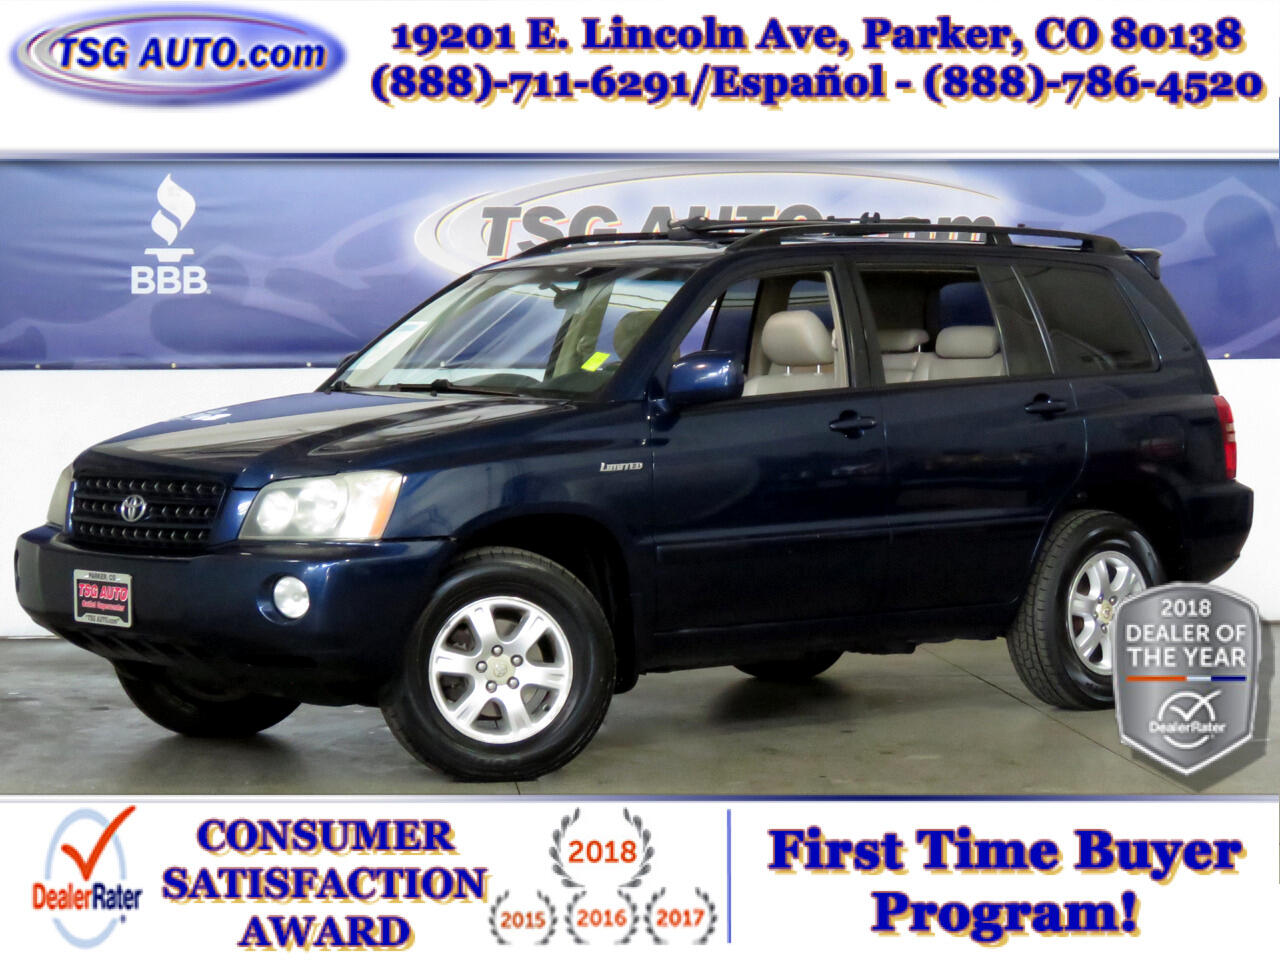 2002 Toyota Highlander 4dr V6 4WD Limited (Natl)